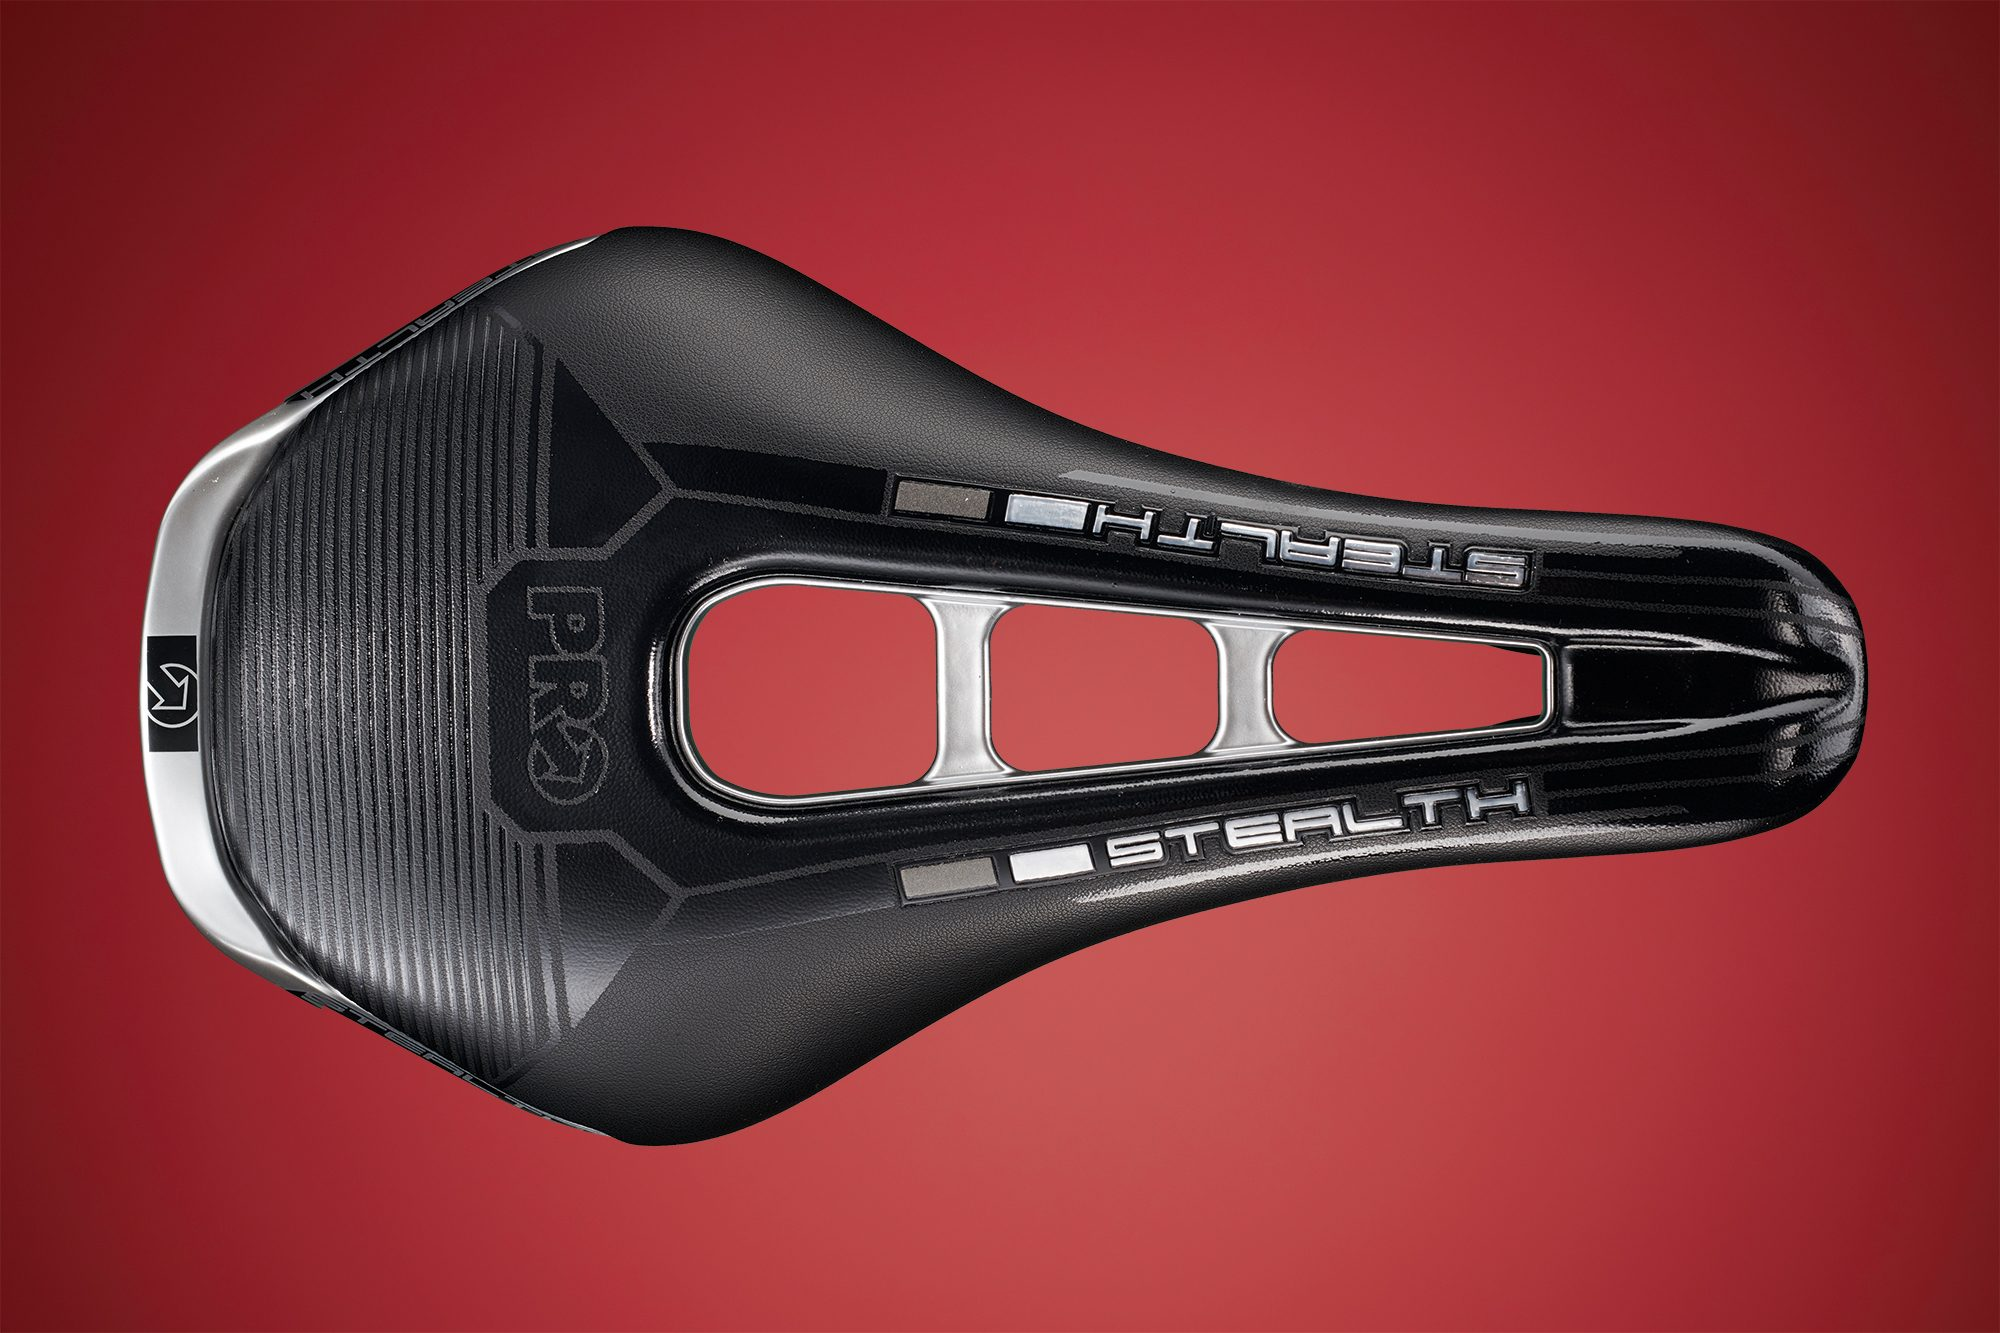 New 2019 Shimano Pro Stealth LTD 142mm Stainless limited edition Road Saddle